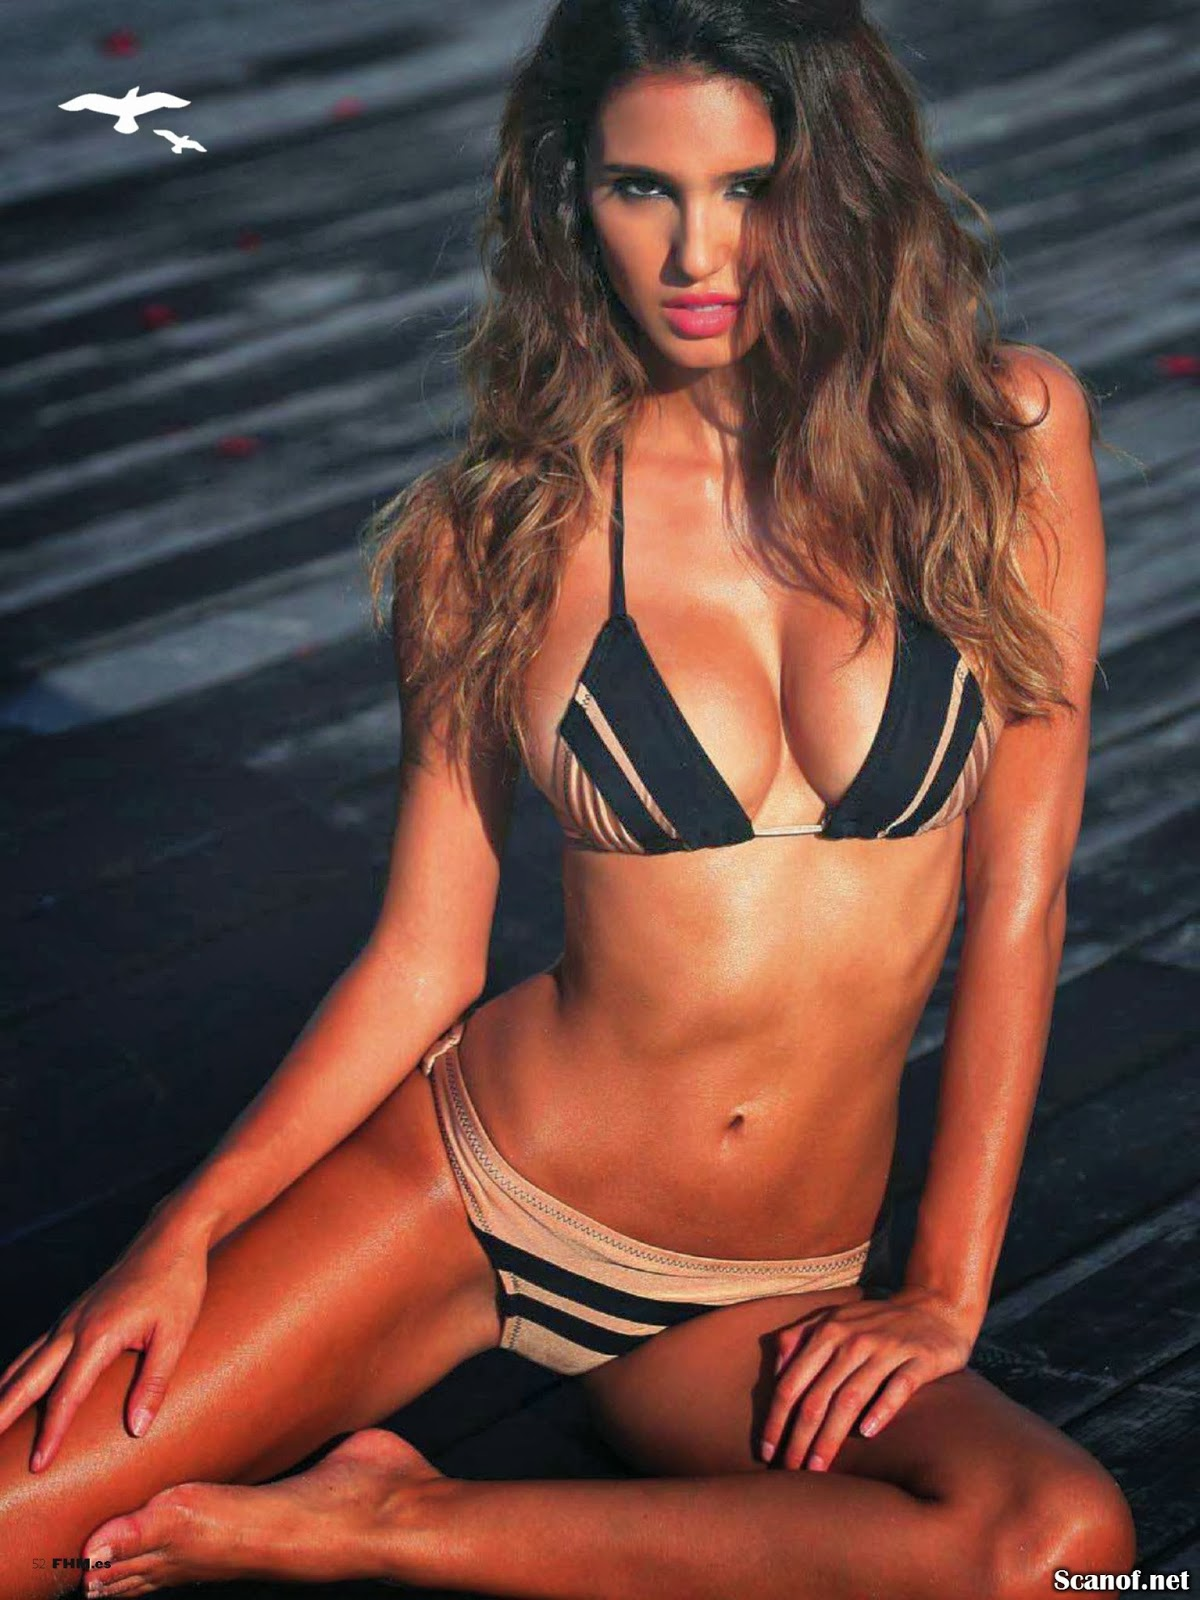 Magazine Photoshoot : Ashley Sky Photoshot by Megane Claire FHM Magazine Spain January 2014 Issue